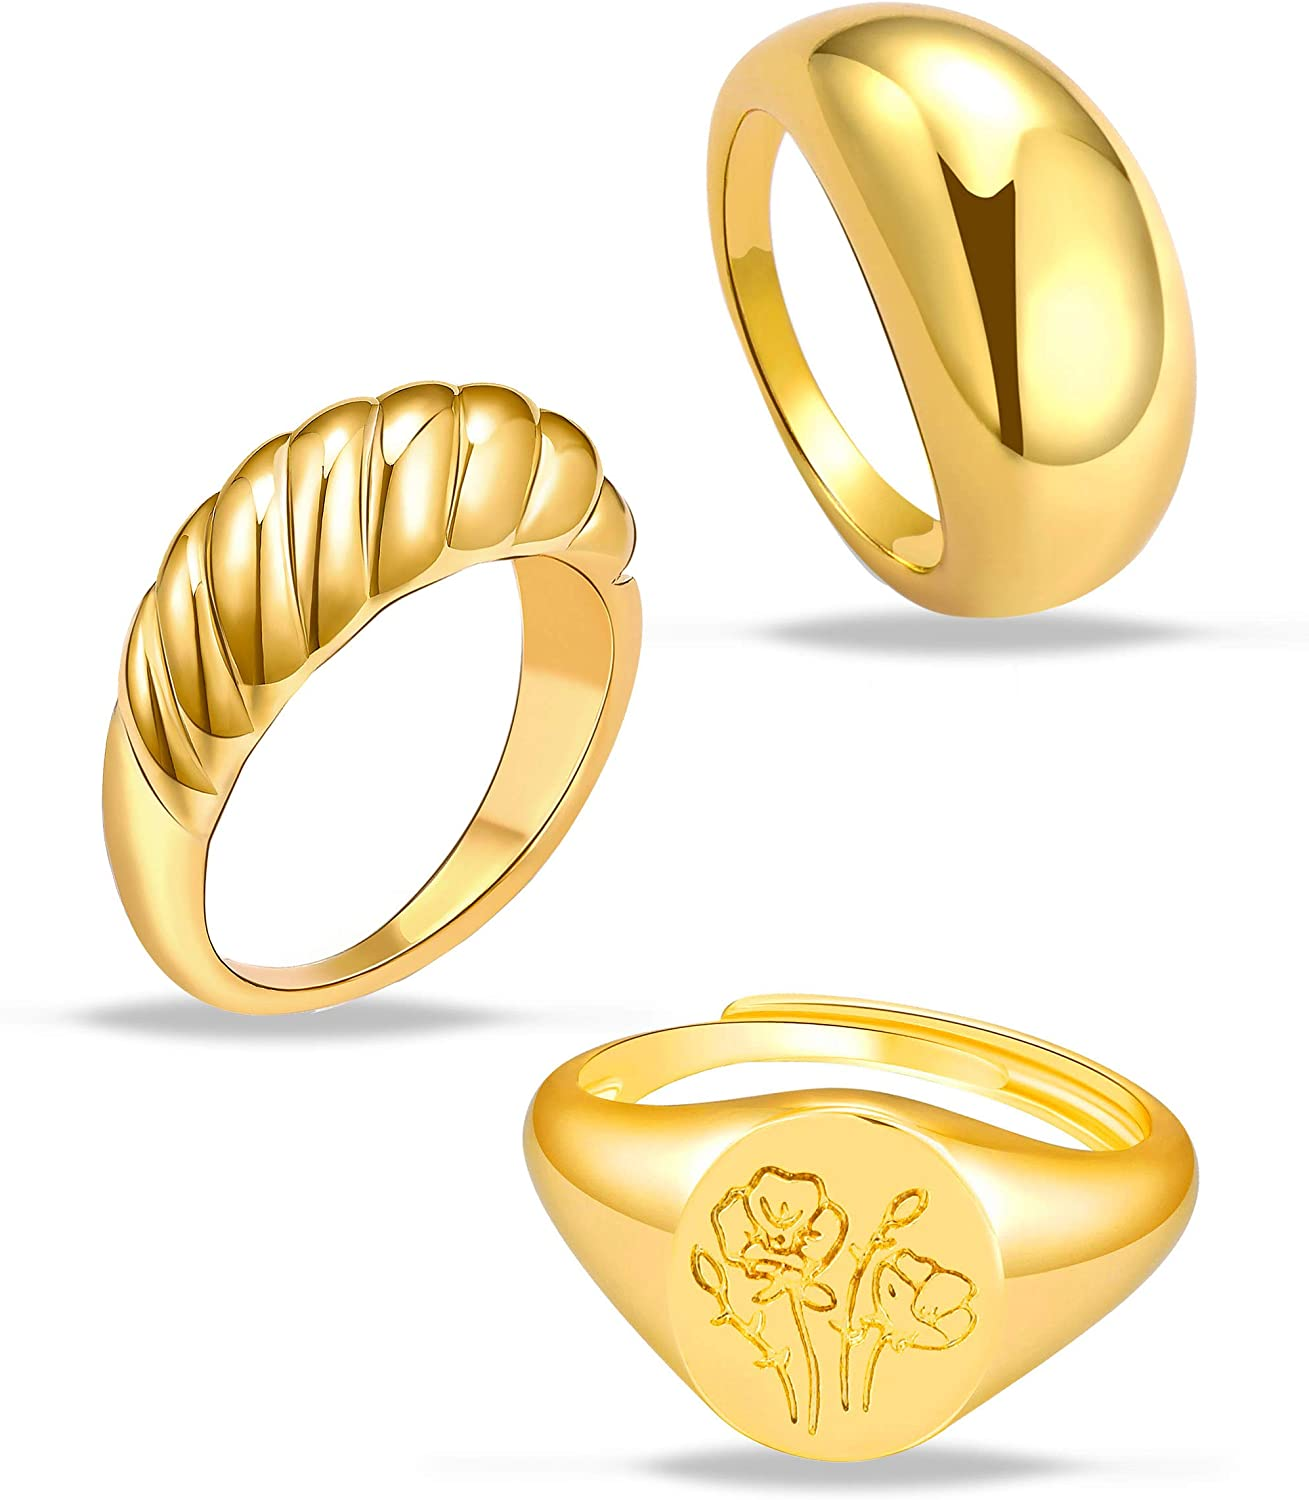 3Pcs Chunky Gold Rings Set for Women Thick Dome Rings 18K Gold Plated Croissant Braided Twisted Stacking Round Signet Rings Size 6-10